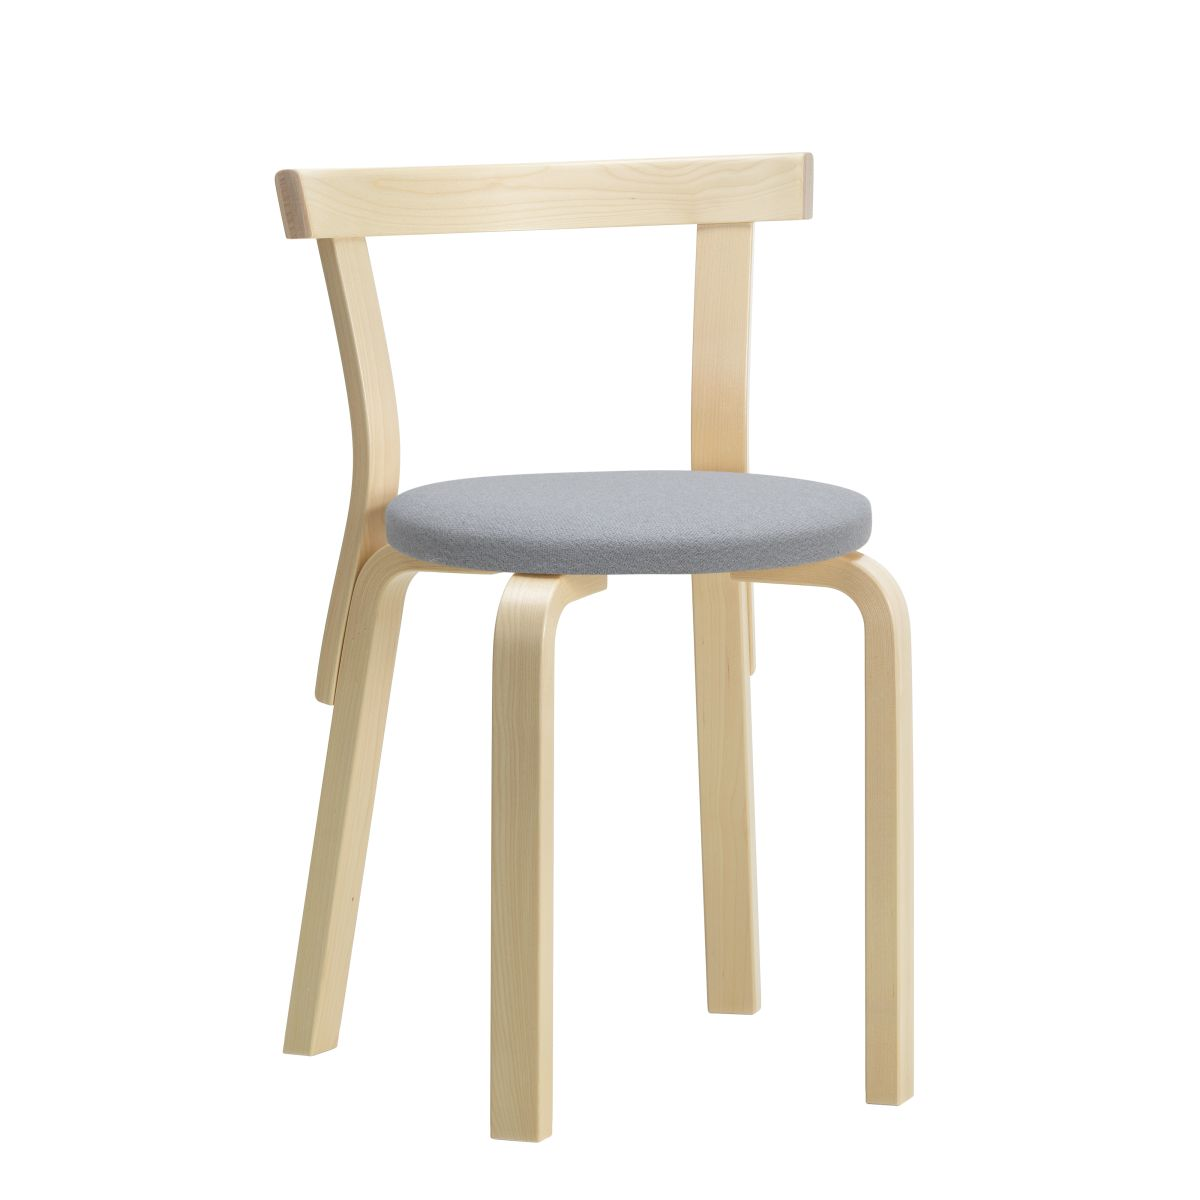 Chair-68-birch-natural-lacquered-seat-fabric-upholstery_F-2912694